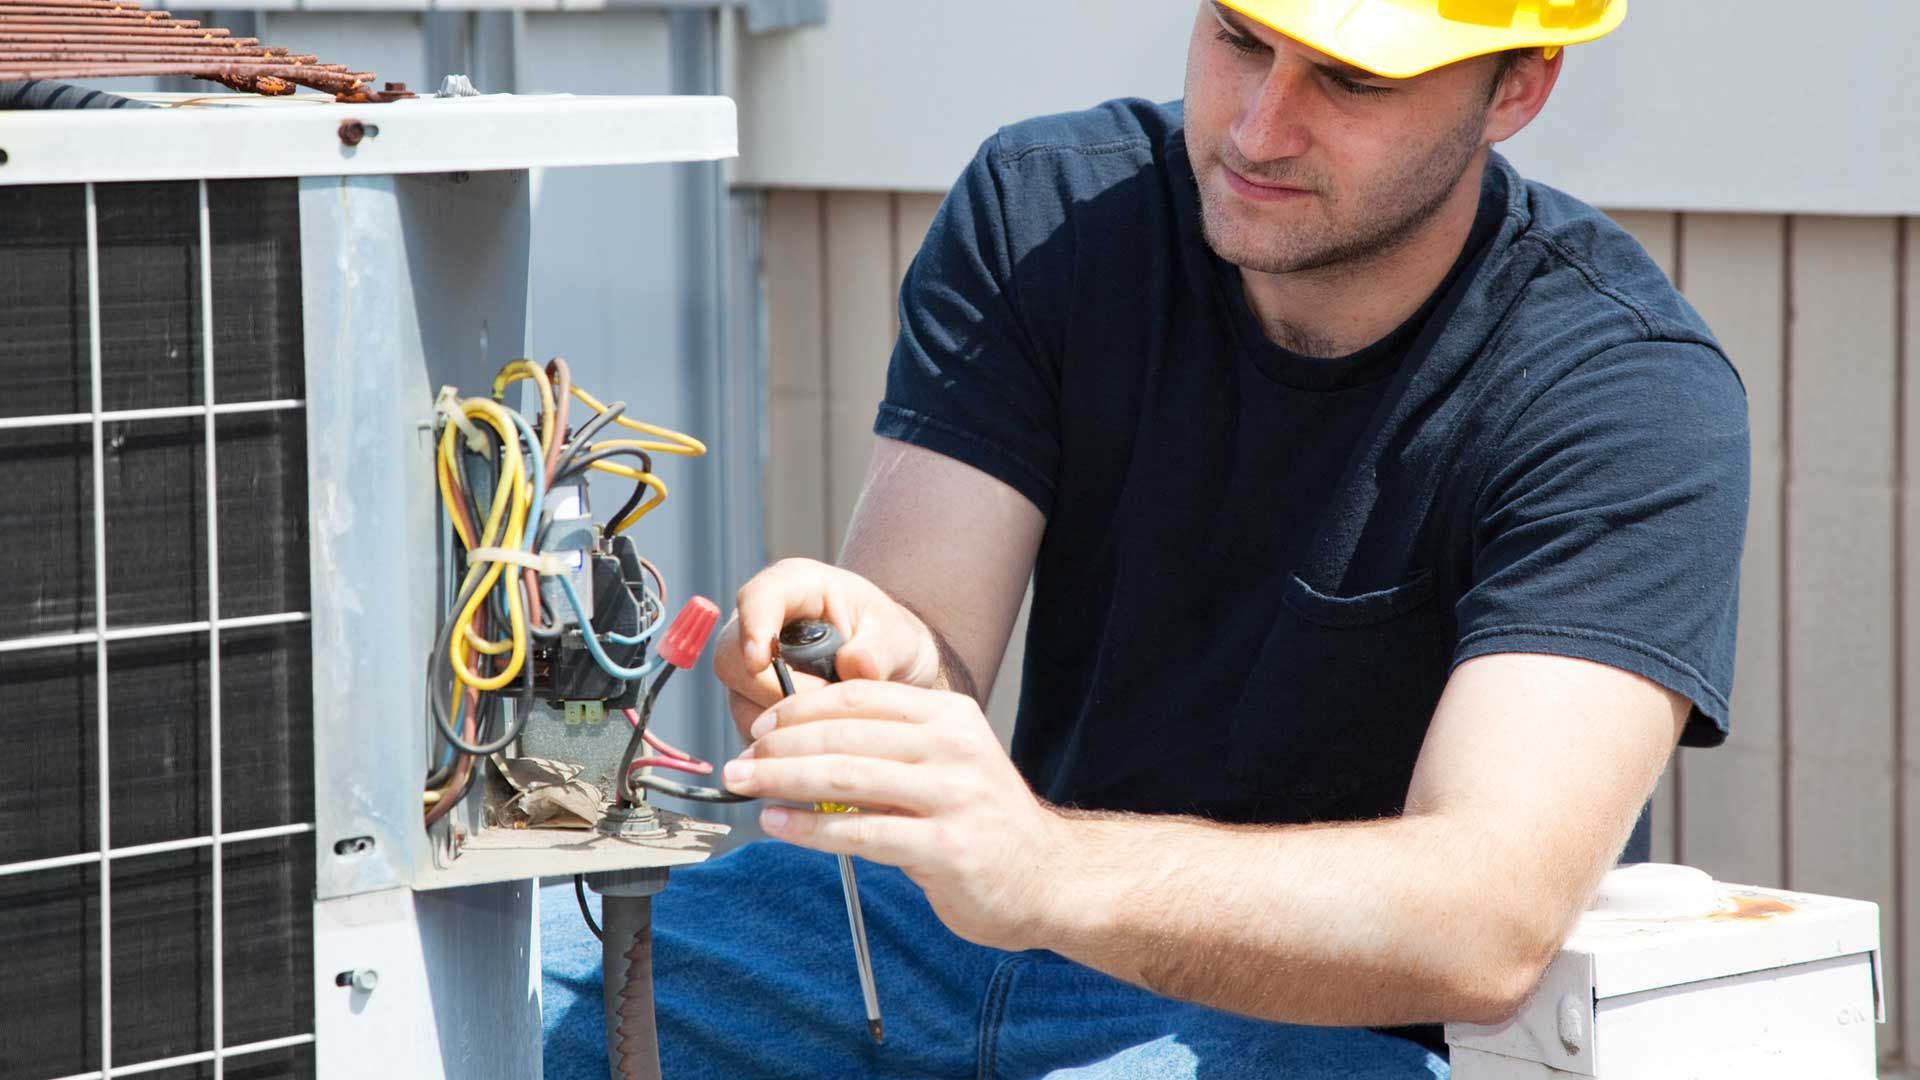 A to Z Airflow, Inc., have professional technicians who